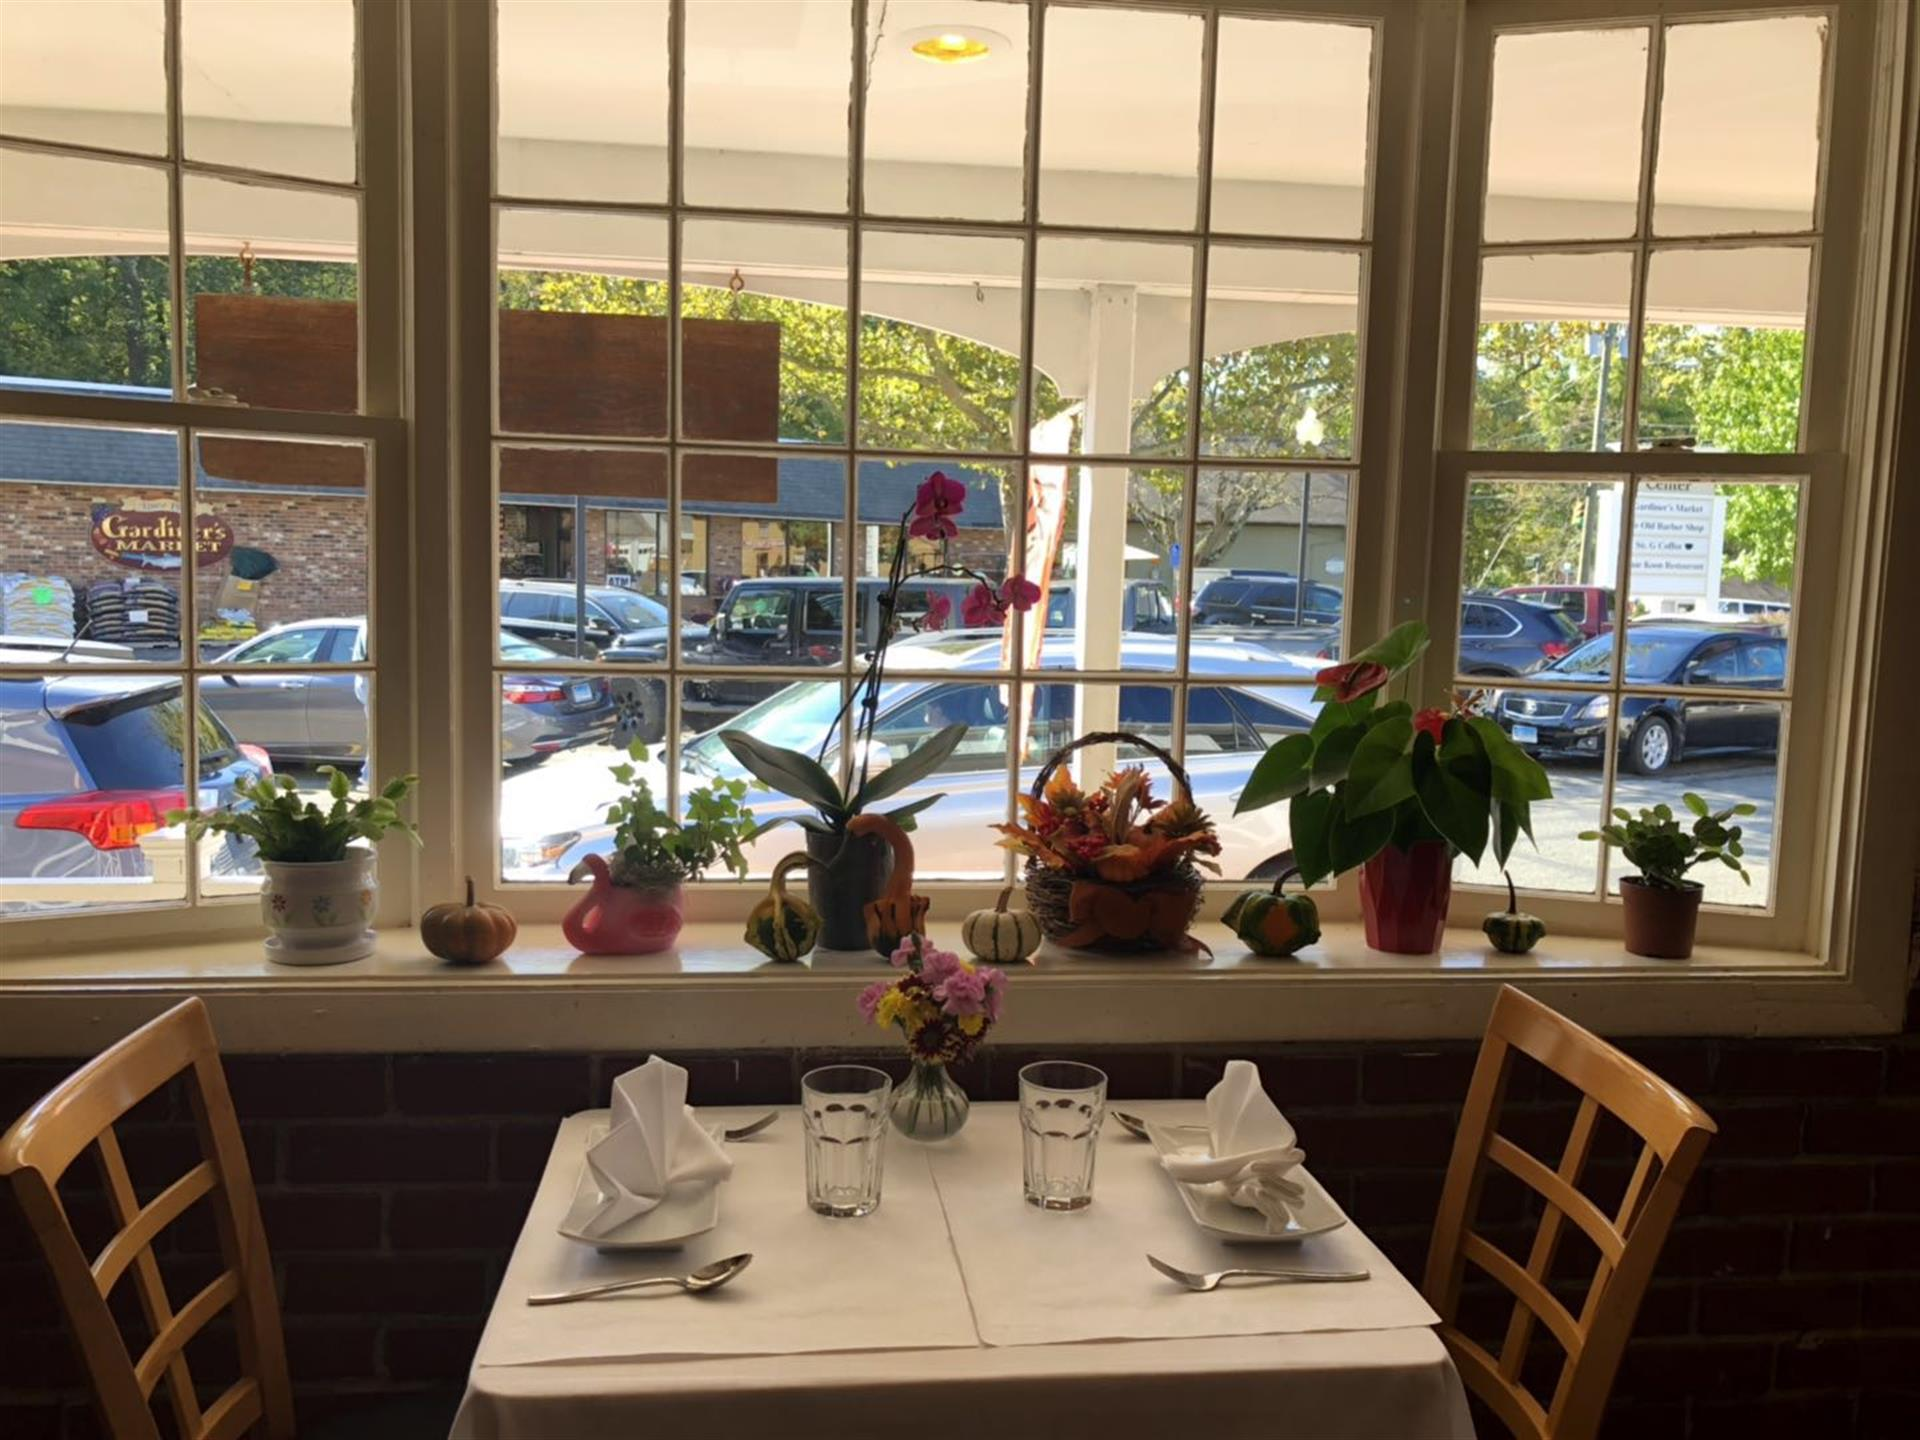 table next to a window. table has plates, silverware, water glasses. flowers are in the window.